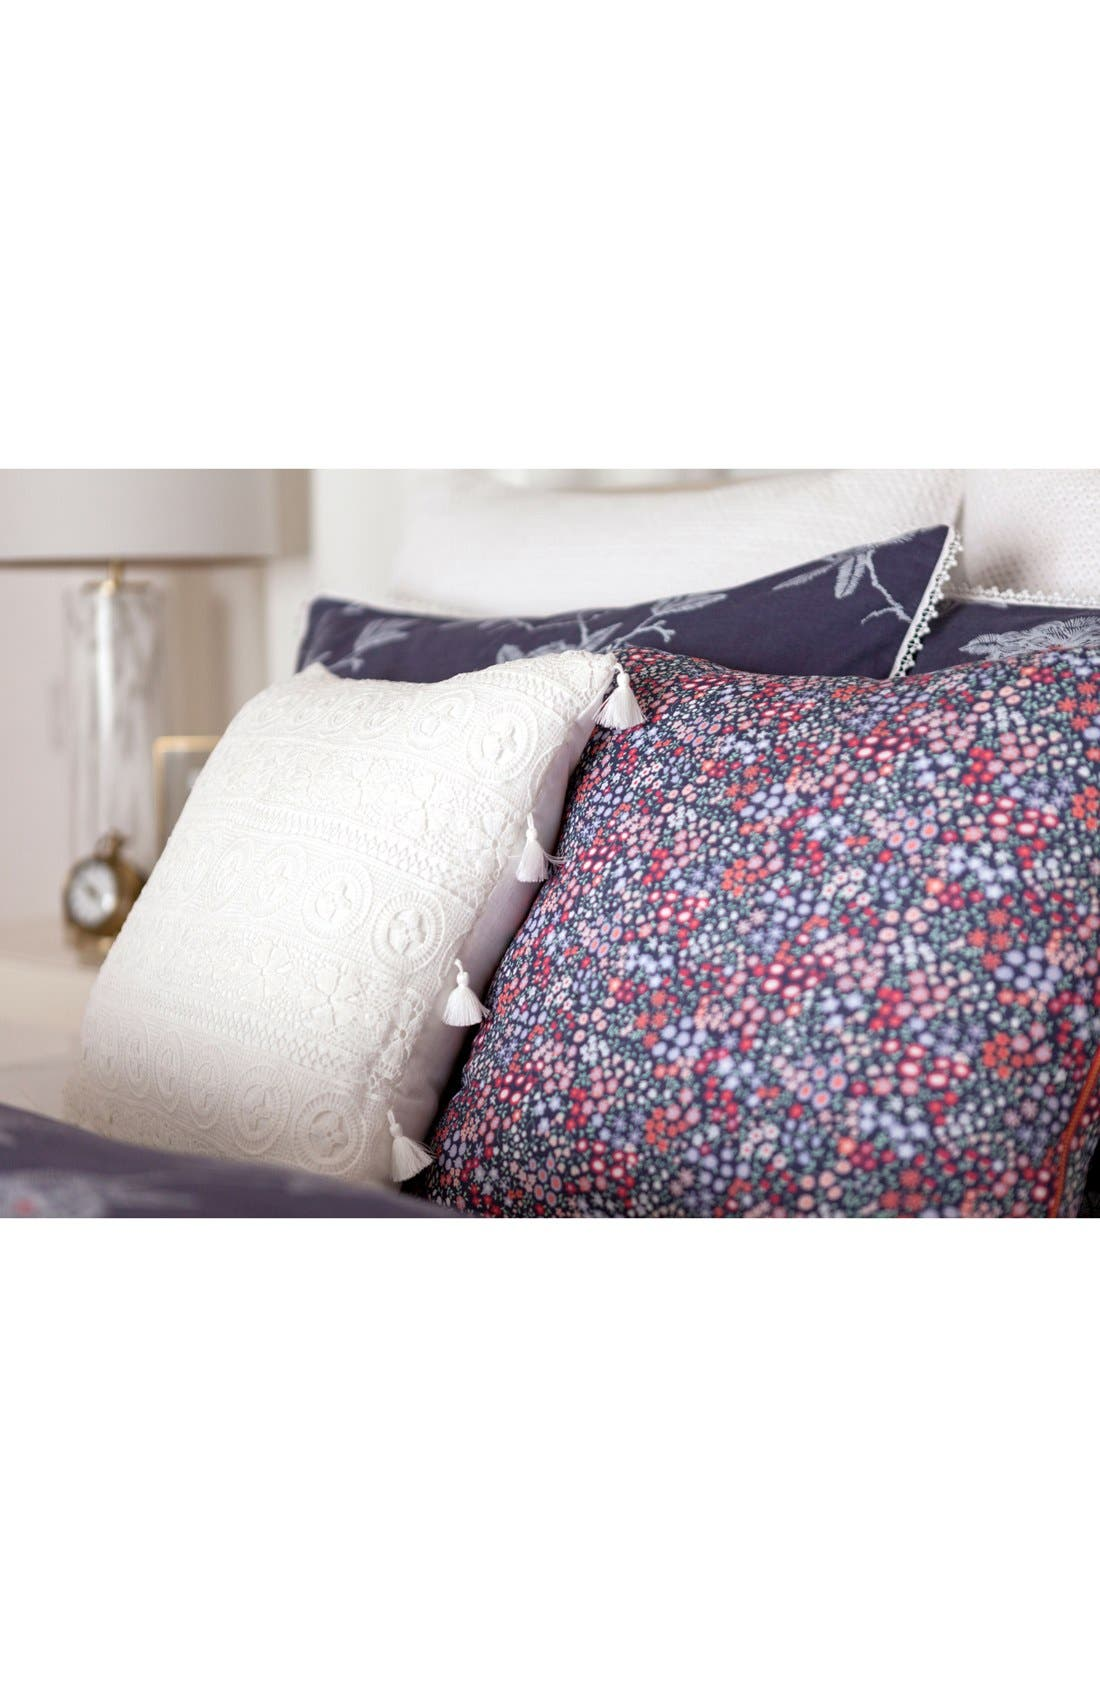 'Sketch' Floral Print Accent Pillow,                             Alternate thumbnail 3, color,                             600